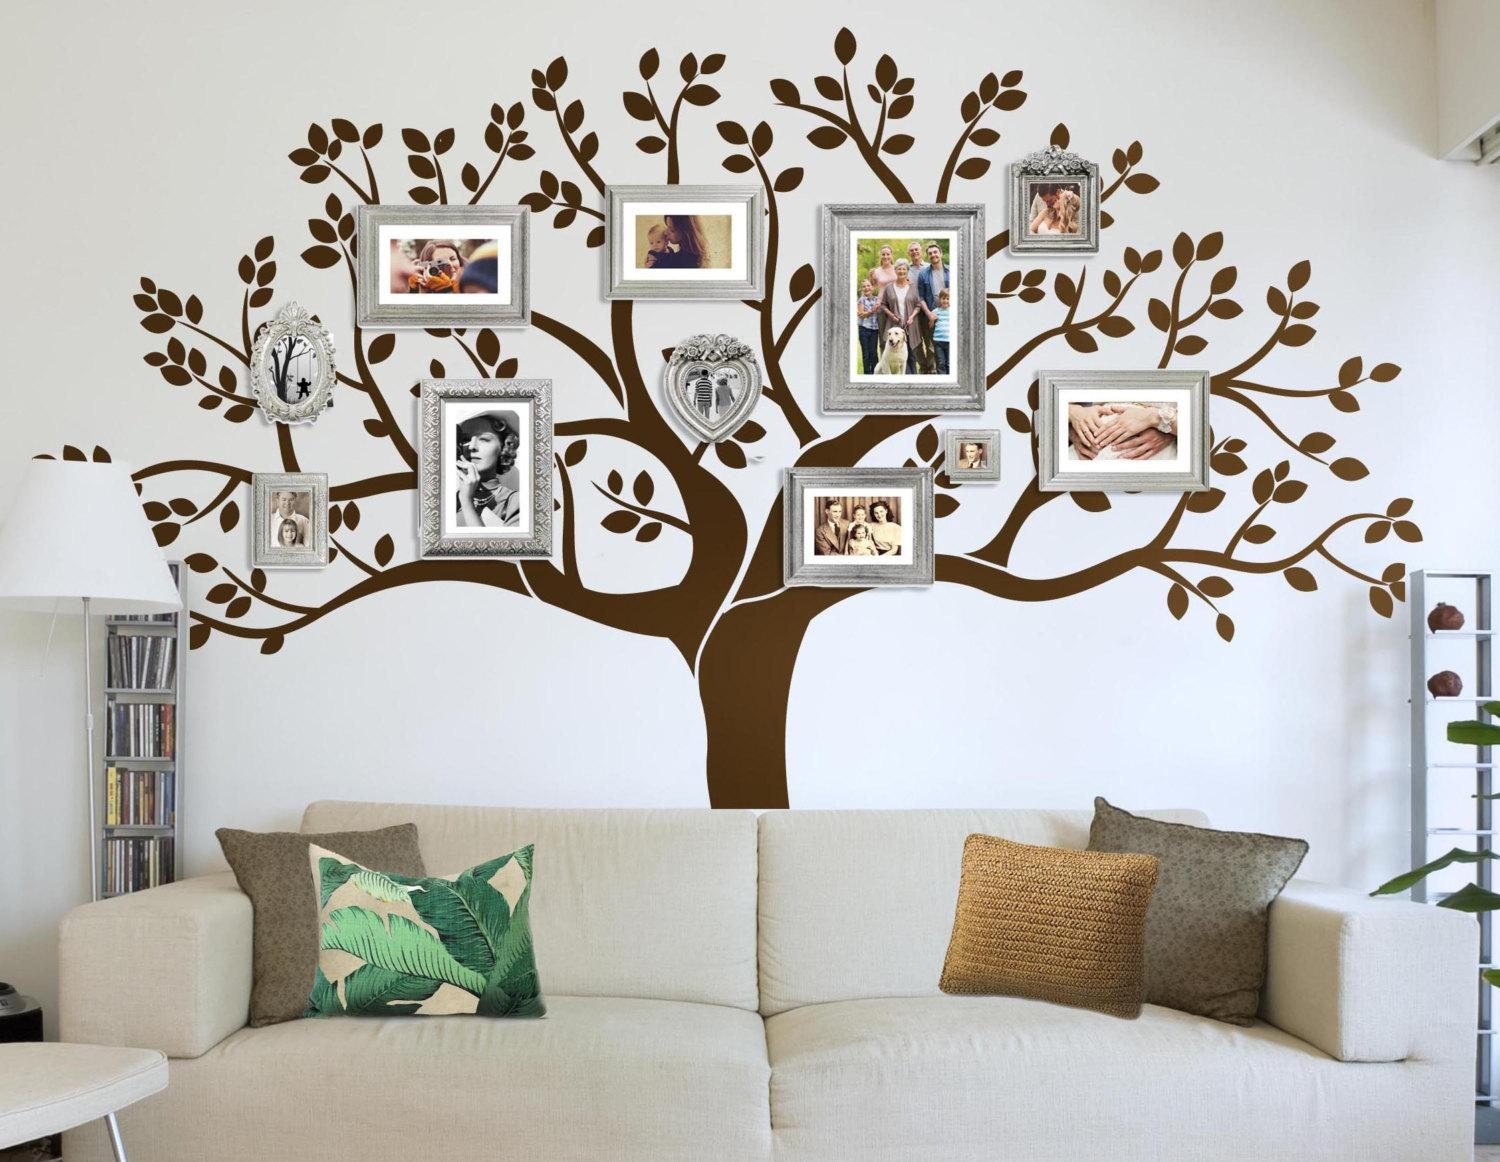 Photo Frame Family Tree Decal Wall Decals Wall Decor Inside Family Wall Art Picture Frames (View 10 of 20)